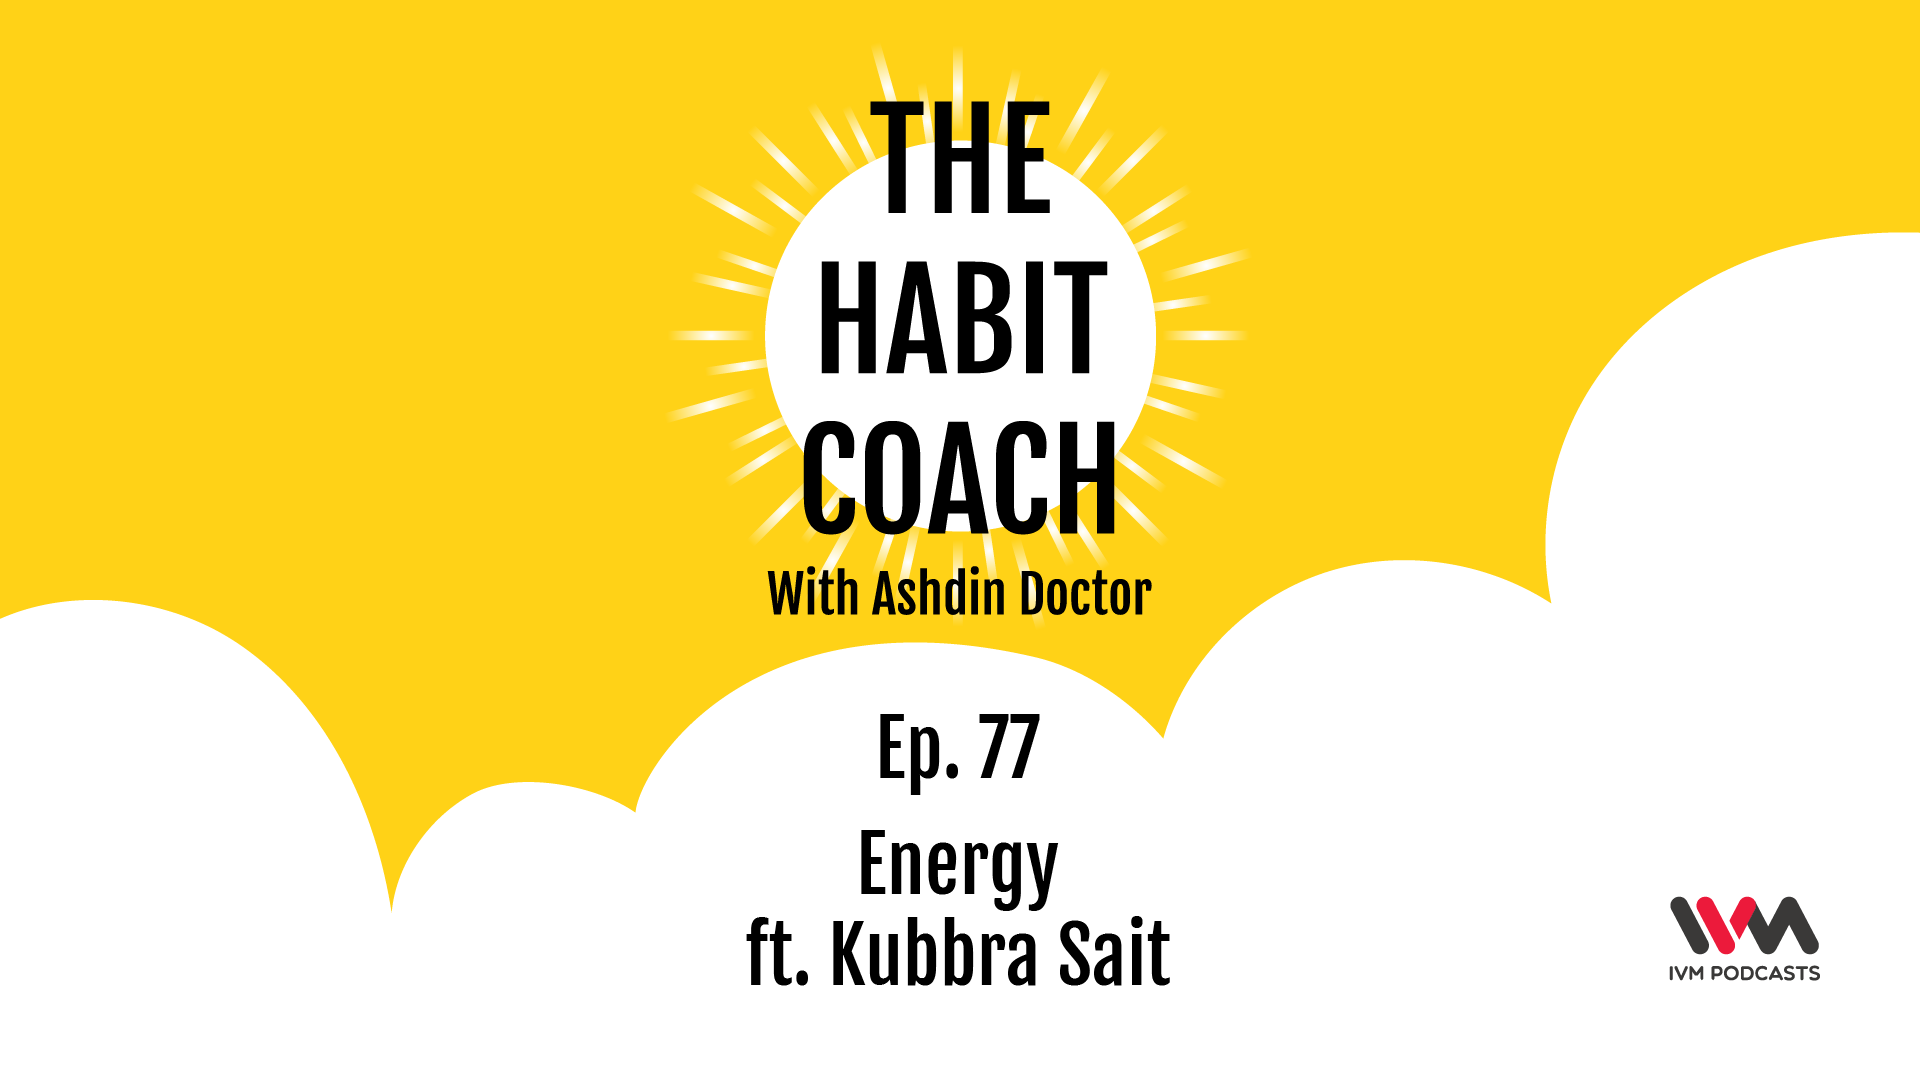 TheHabitCoachEpisode77.png